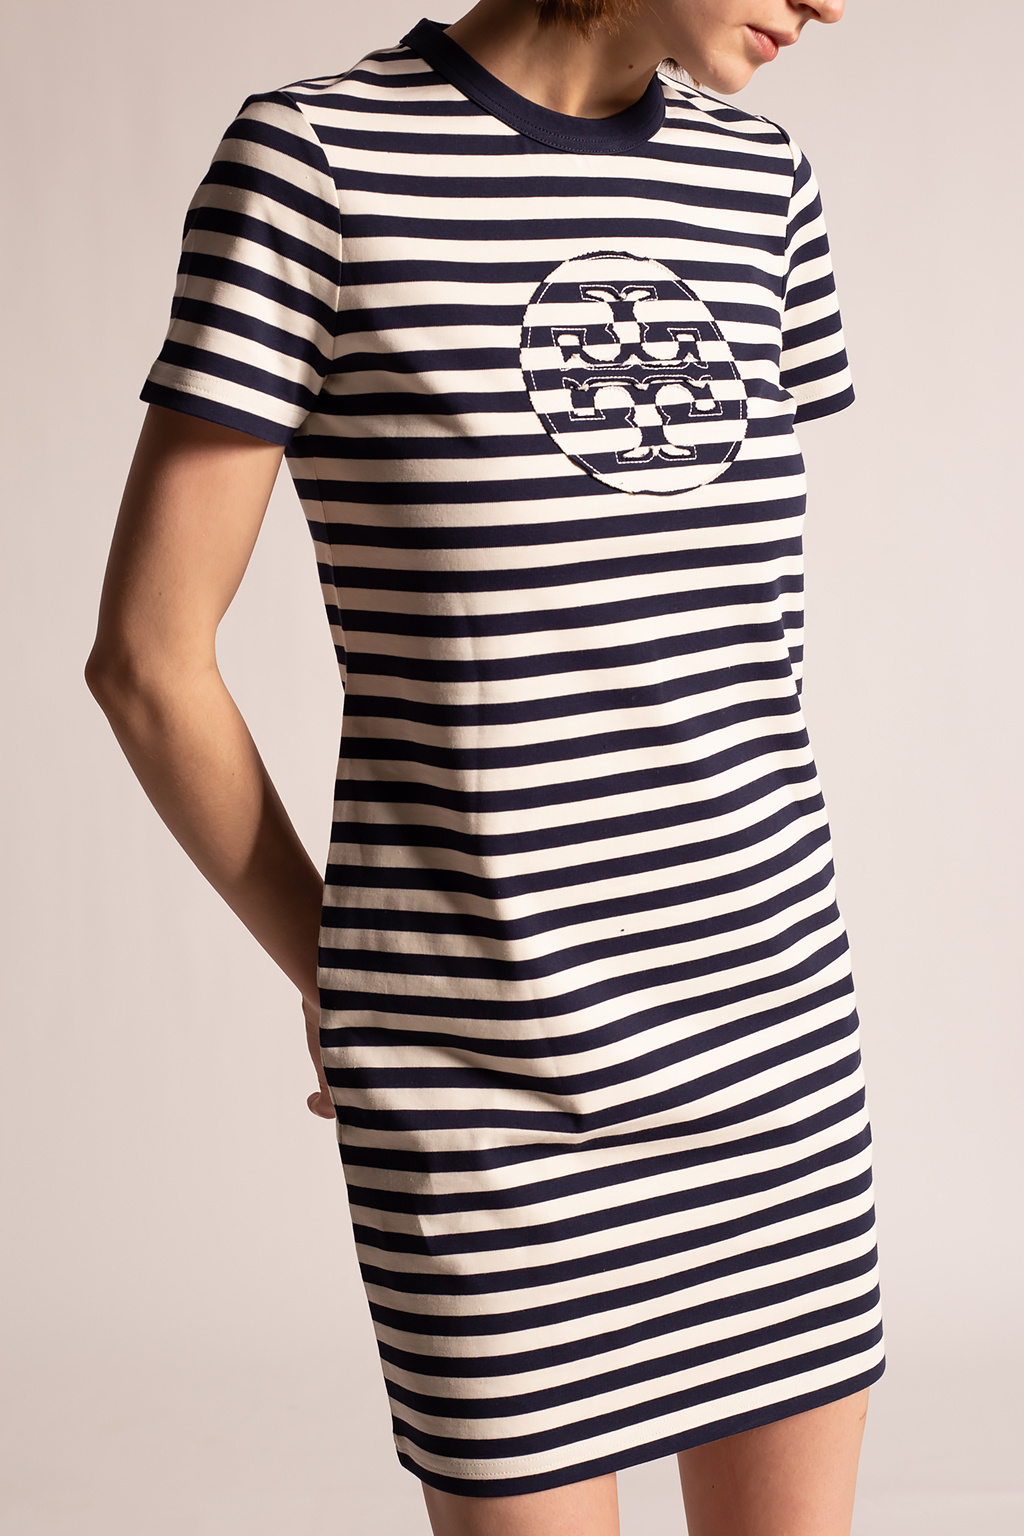 Tory Burch Dress with logo